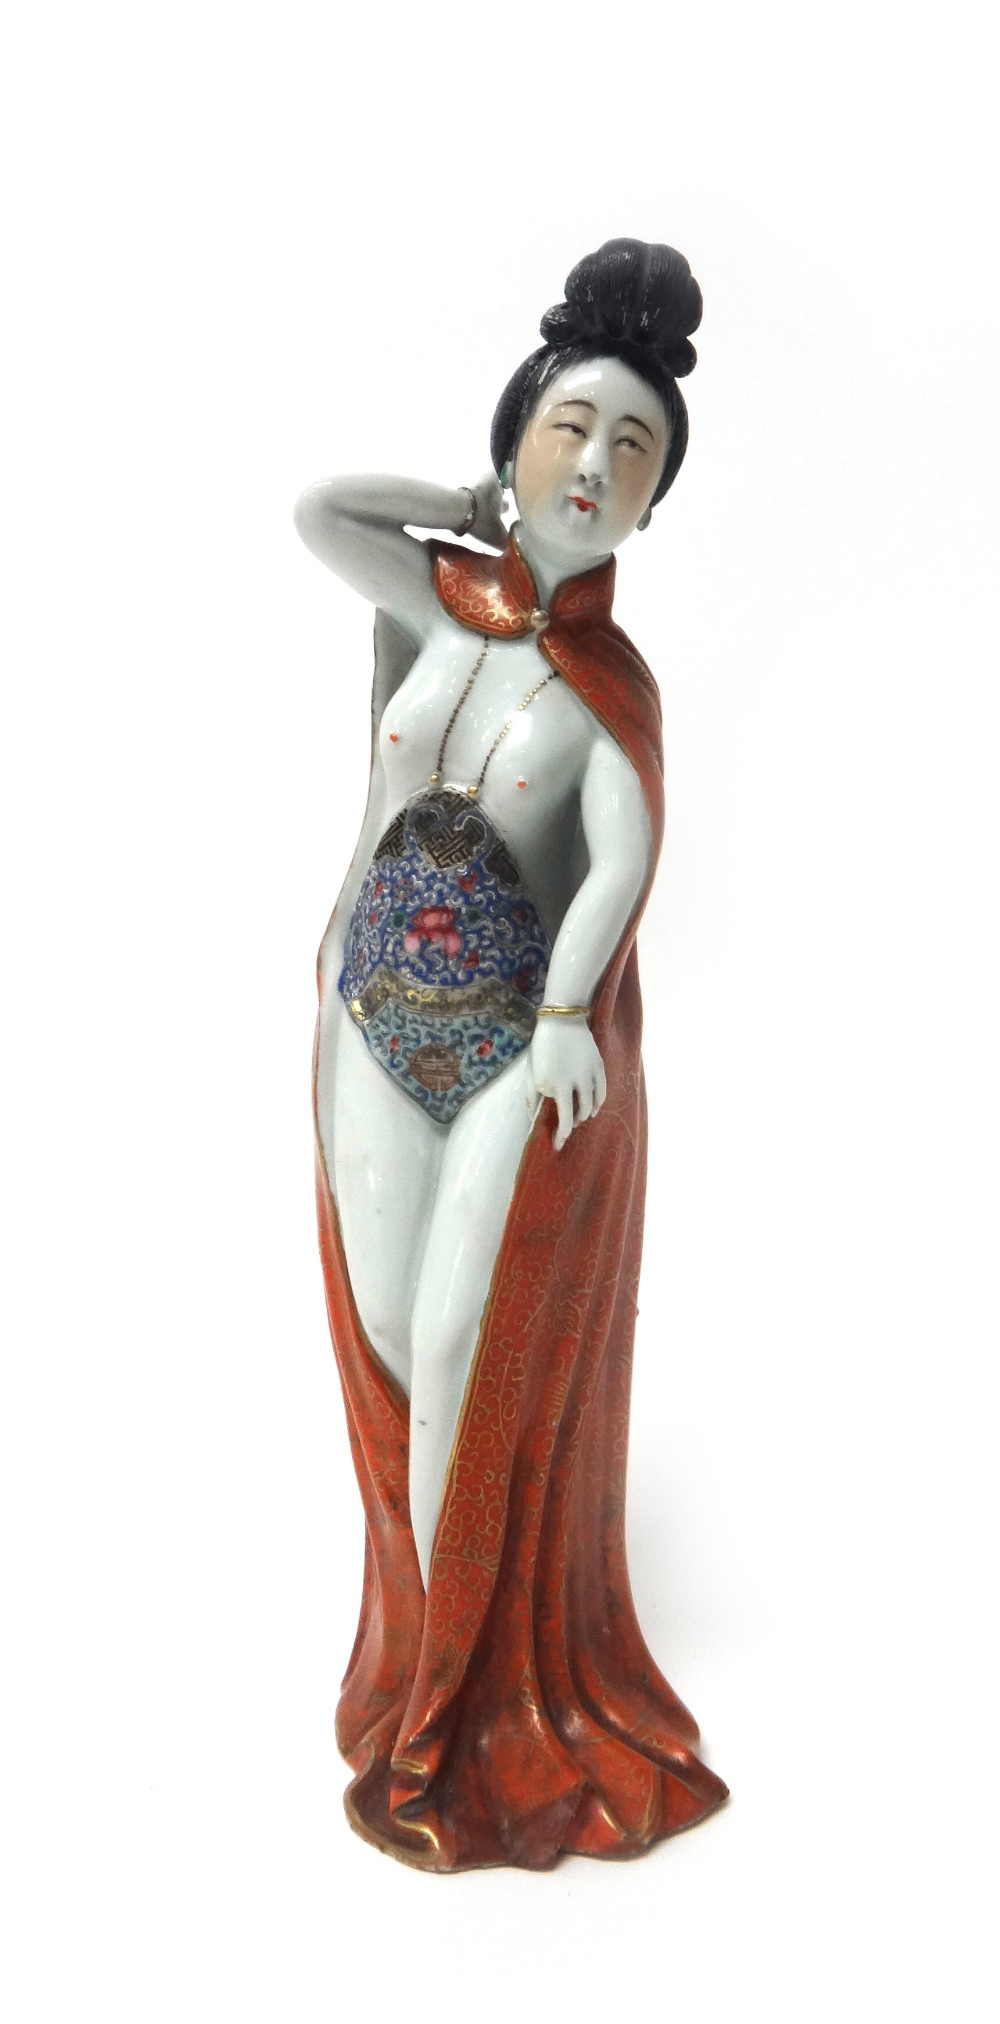 Lot 1330 - An unusual Chinese porcelain figure of a young woman, 20th century,